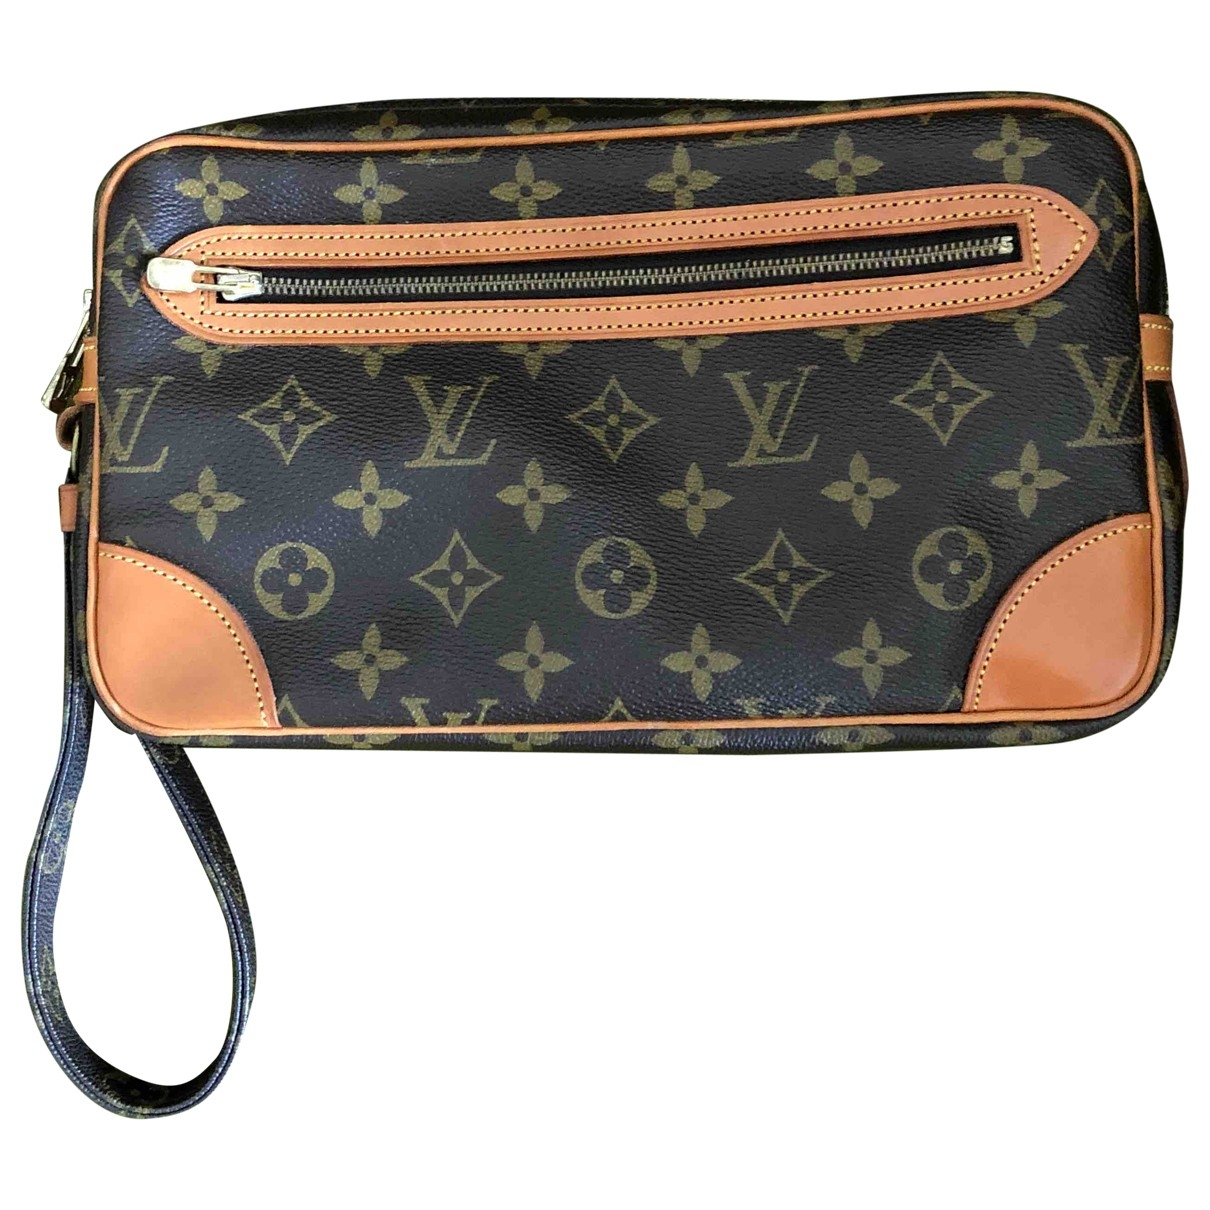 Louis Vuitton \N Kleinlederwaren in  Kamel Leinen